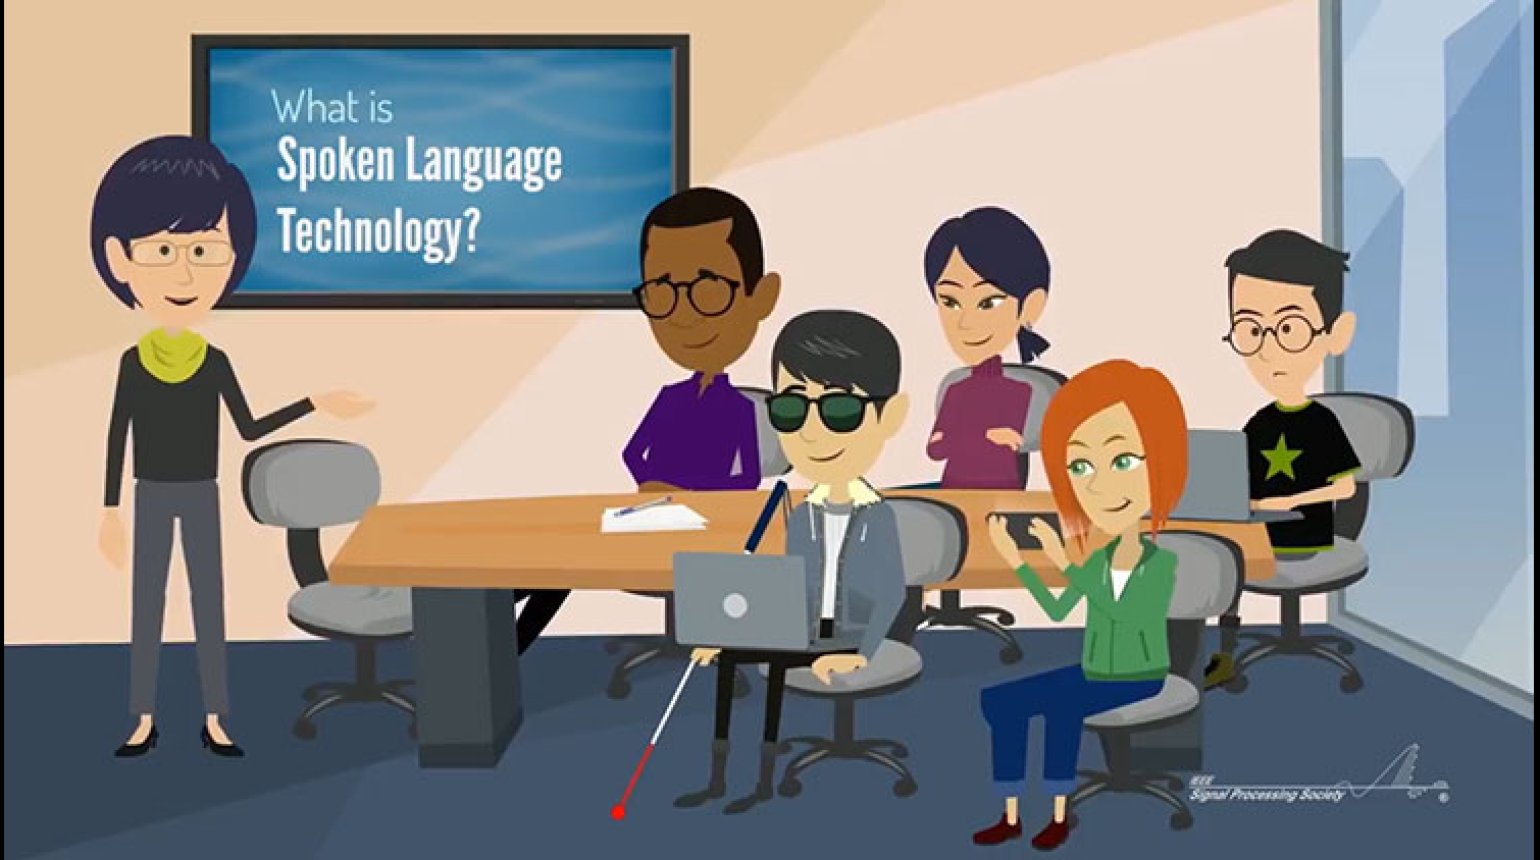 What is Spoken Language Technology?